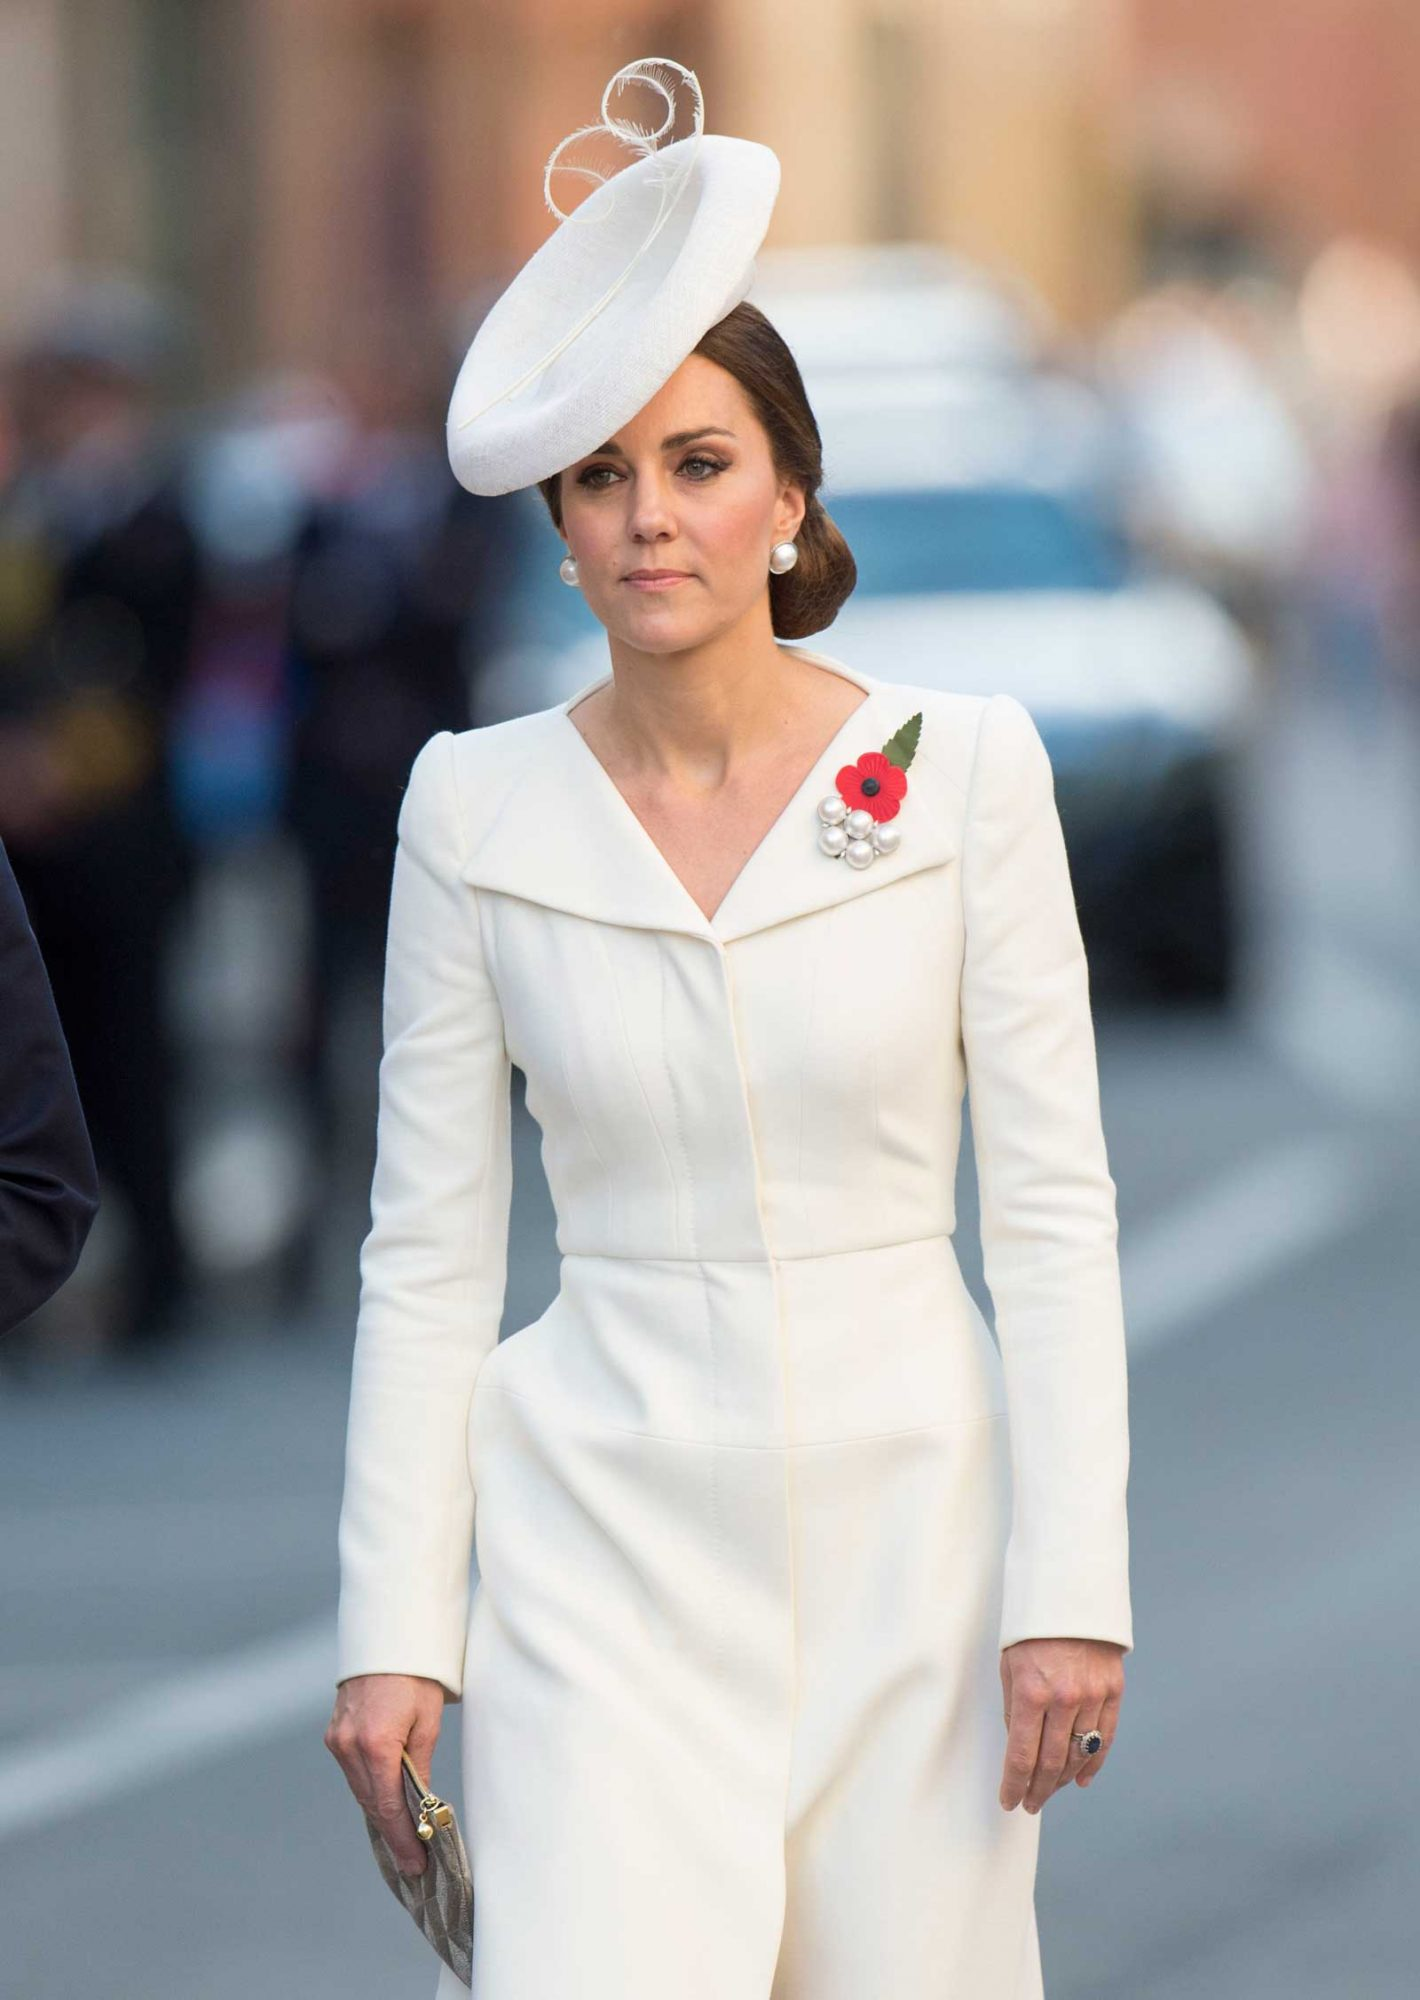 Kate Middleton S Royal Wedding Outfit Is A Recycled Look